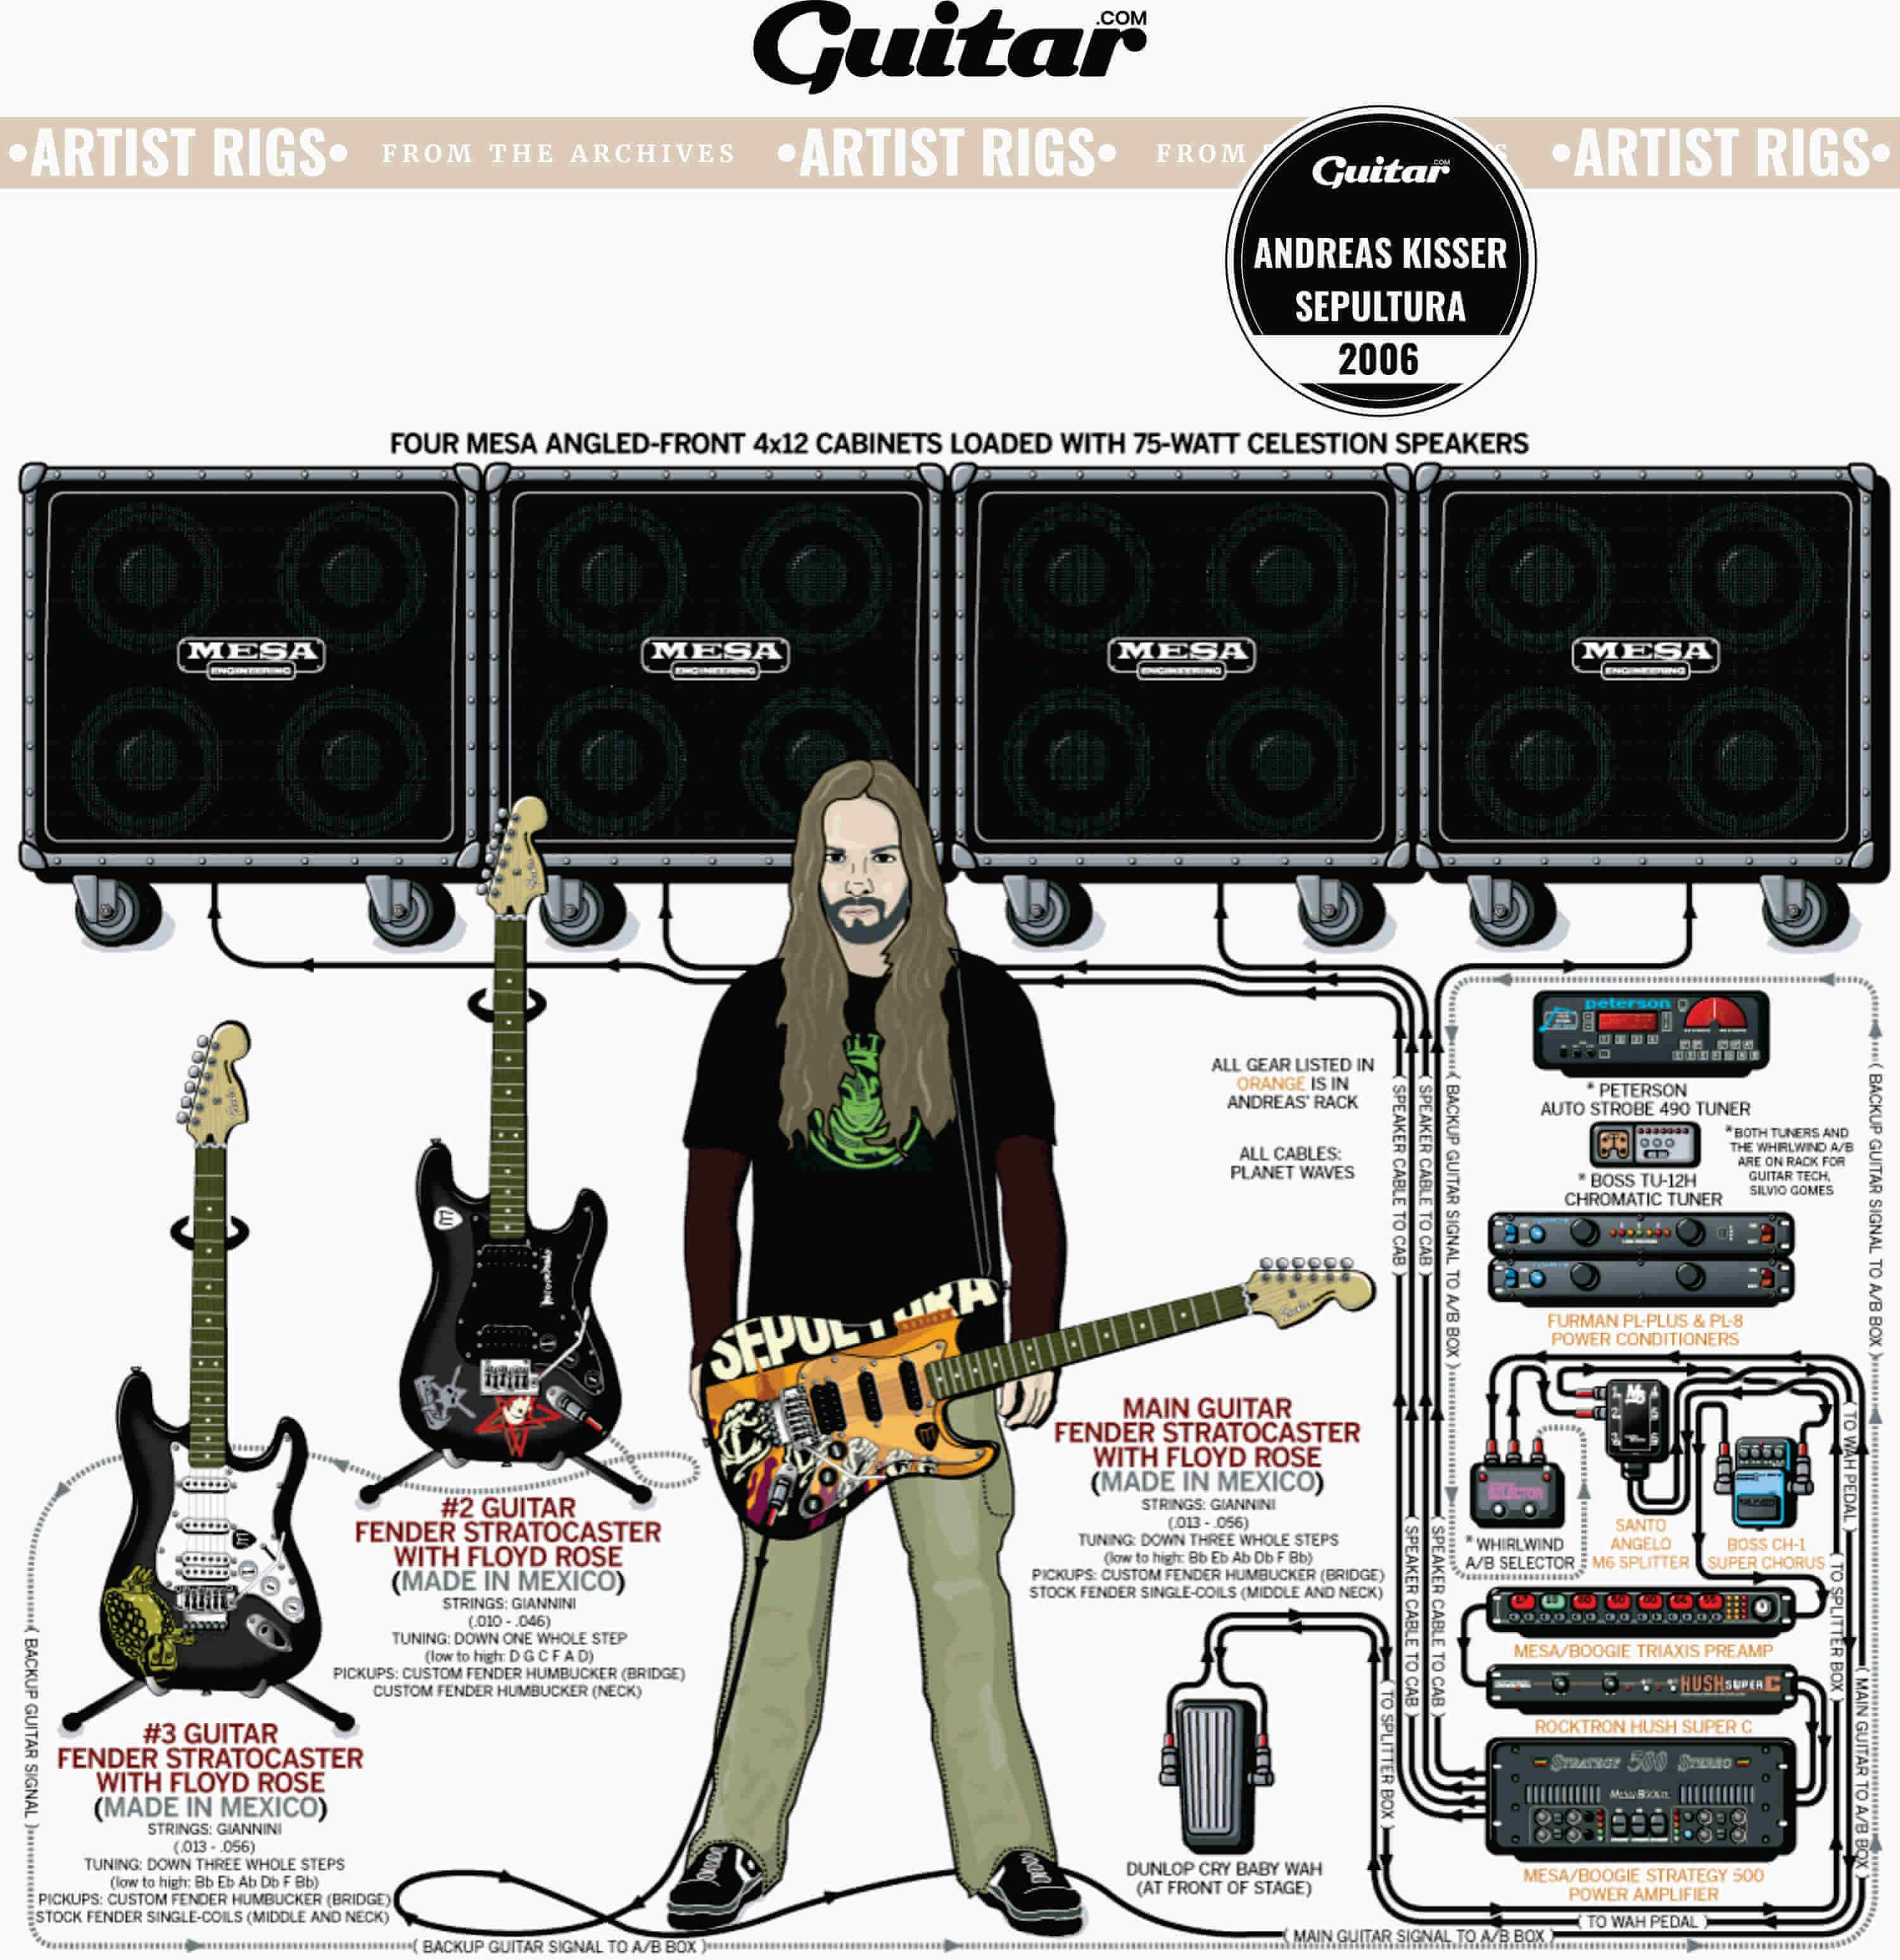 Rig Diagram: Andreas Kisser, Sepultura (2006)